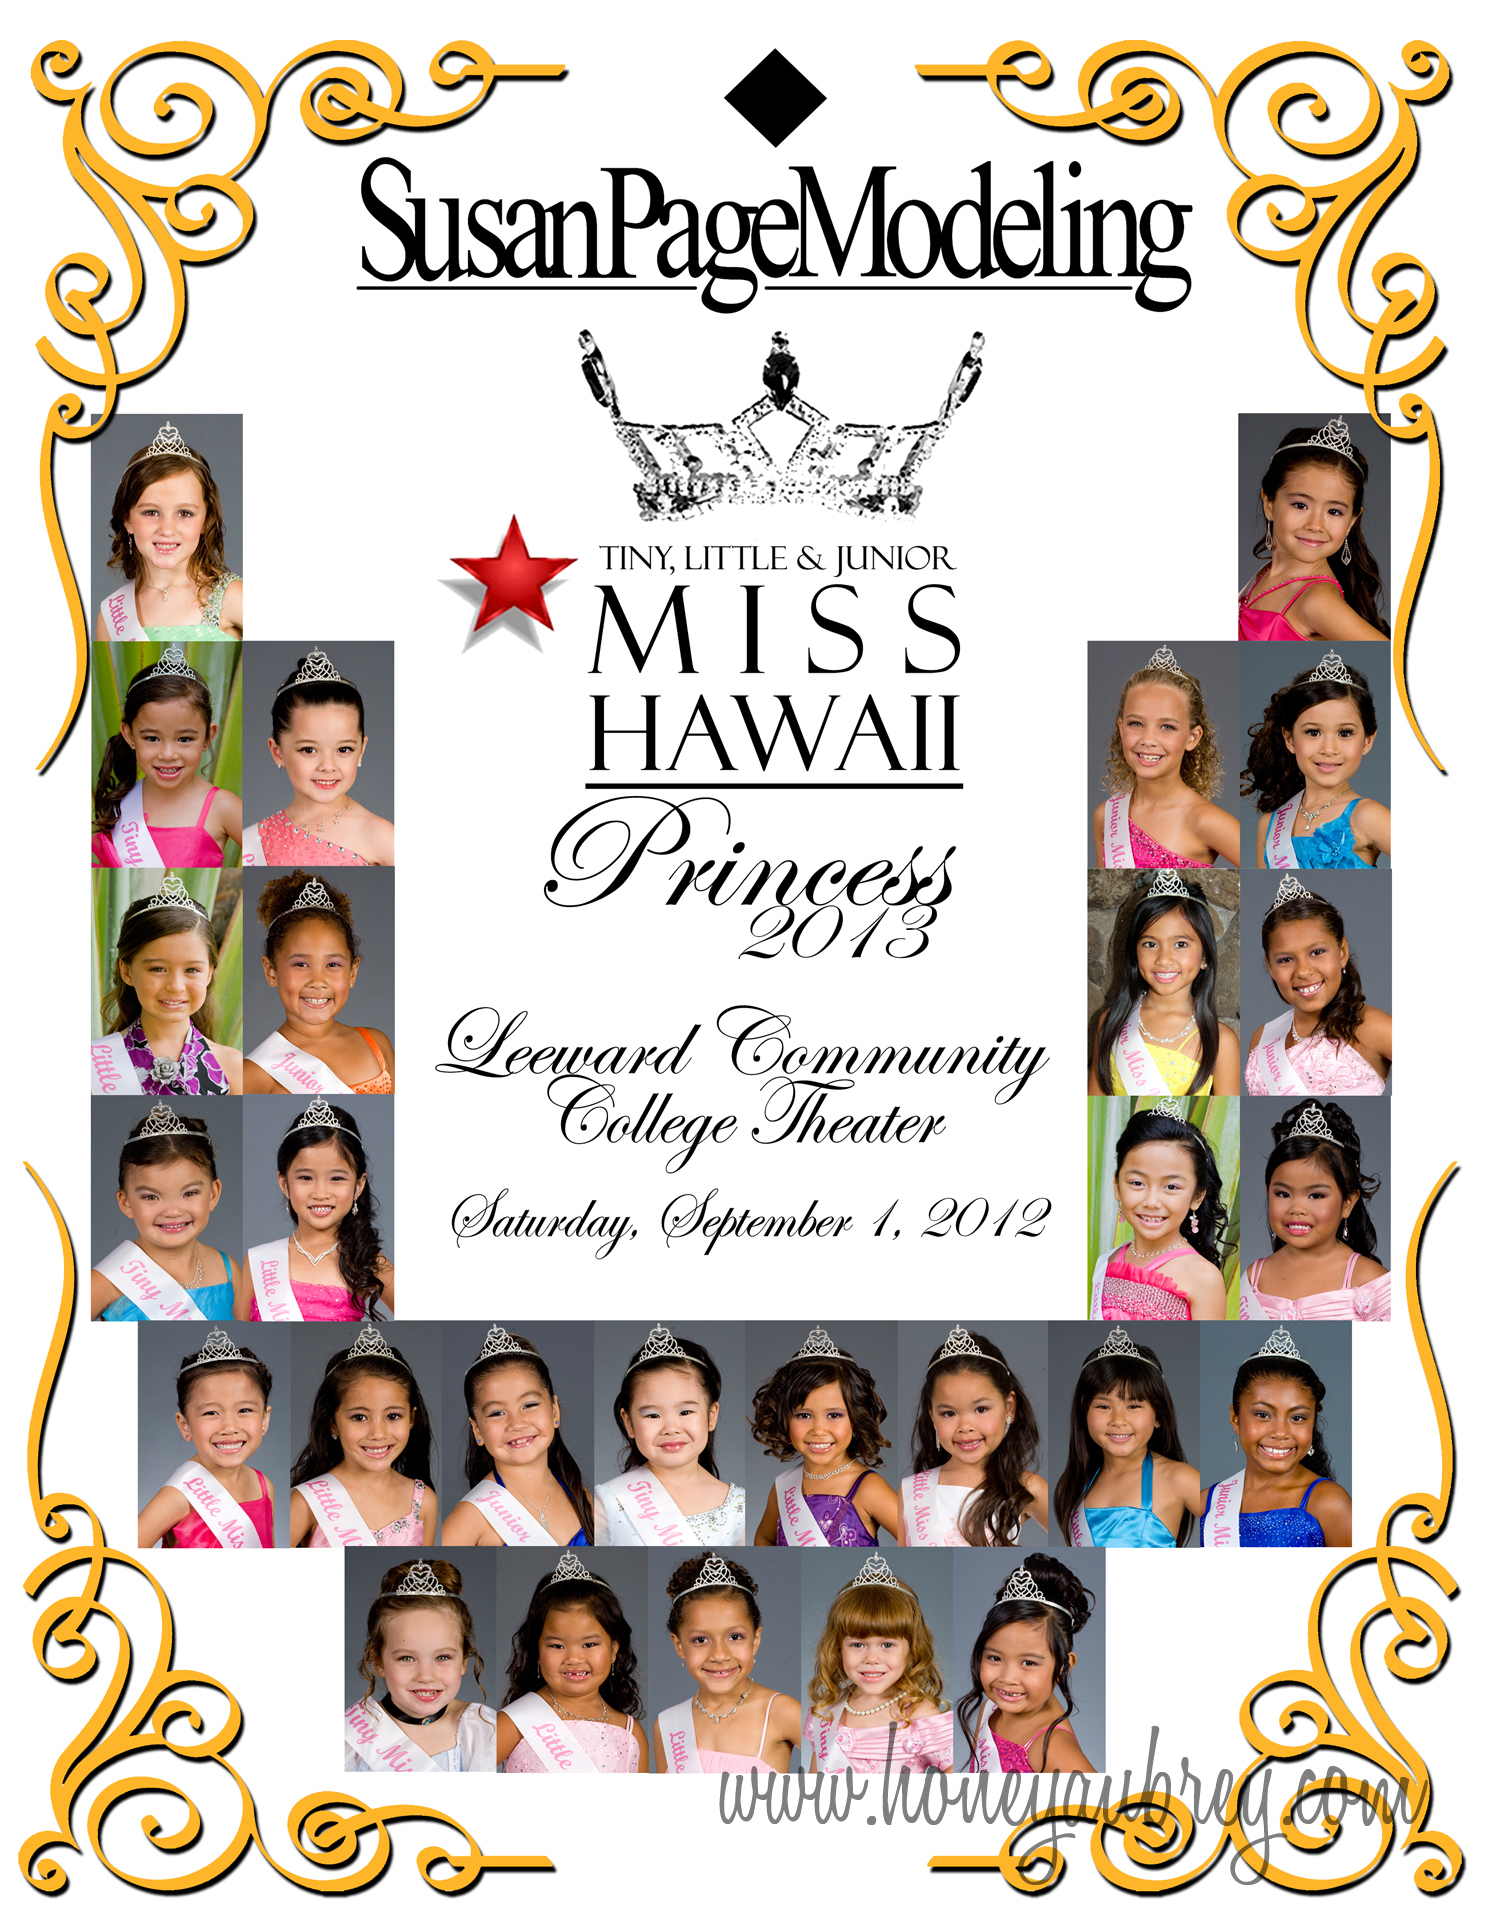 Miss, Little Miss, and Junior Miss Hawaii Princess Contestants 2013